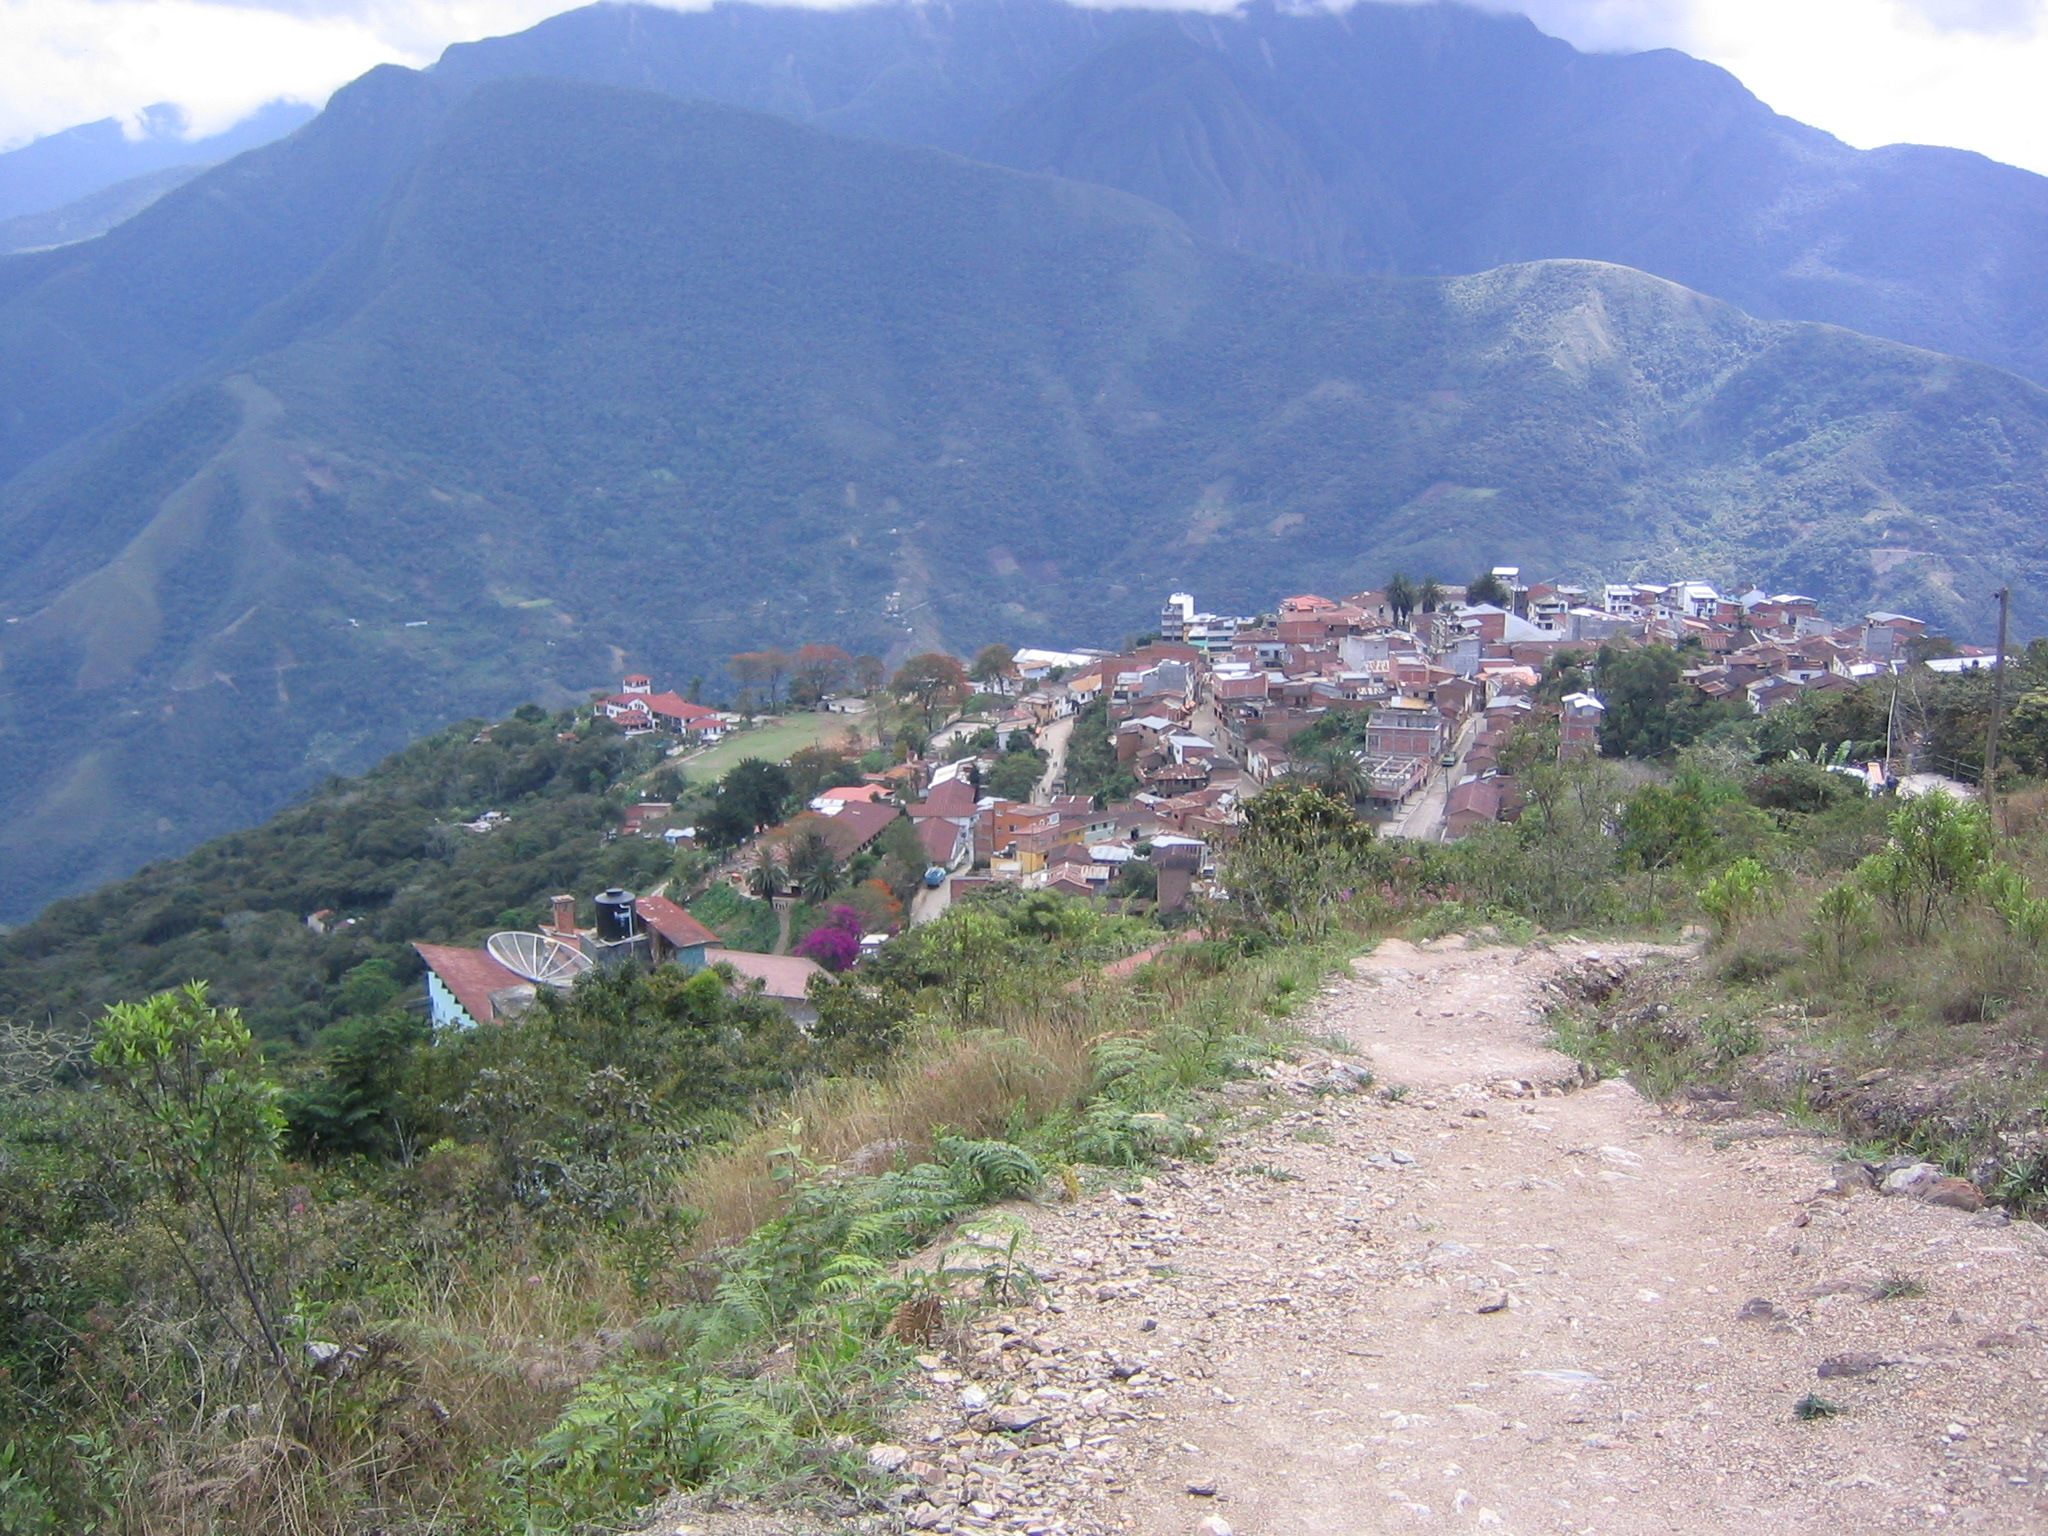 la paz single guys This road is one of the few routes that connect the amazon rainforest region of  northern bolivia, to the capital city of la paz most of the road.